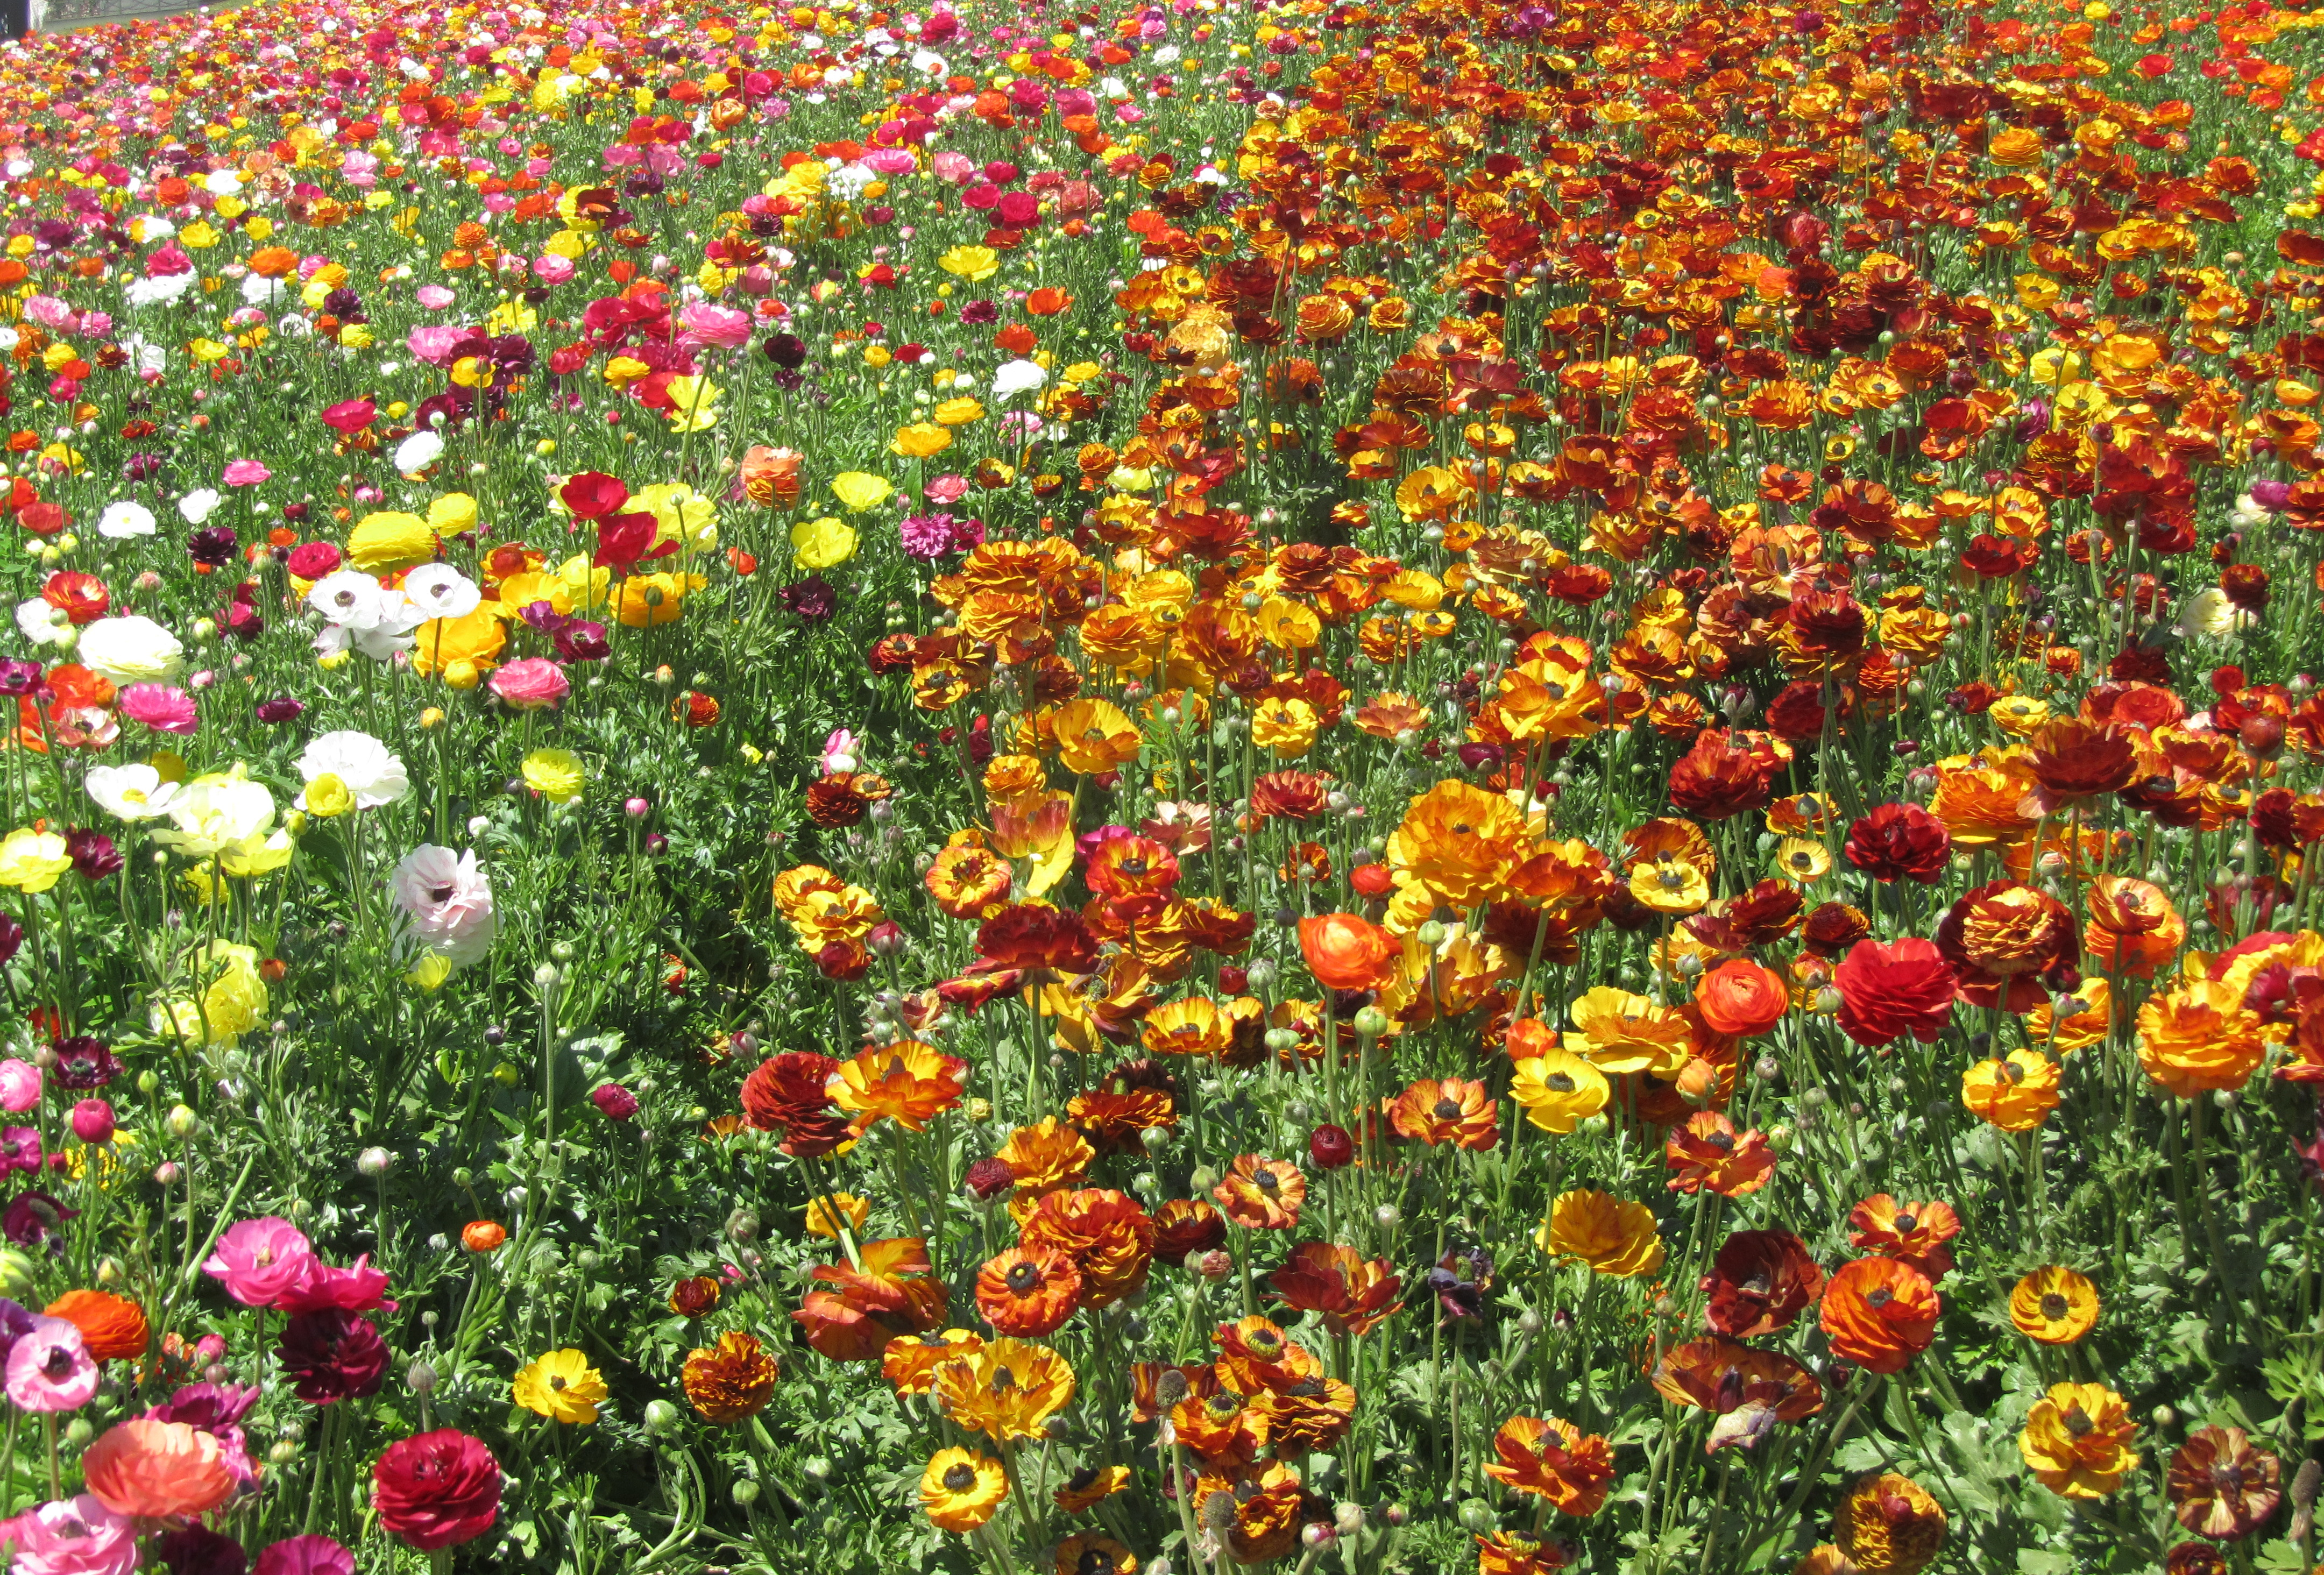 Visit The Flower Fields In Carlsbad California March 1 May 12